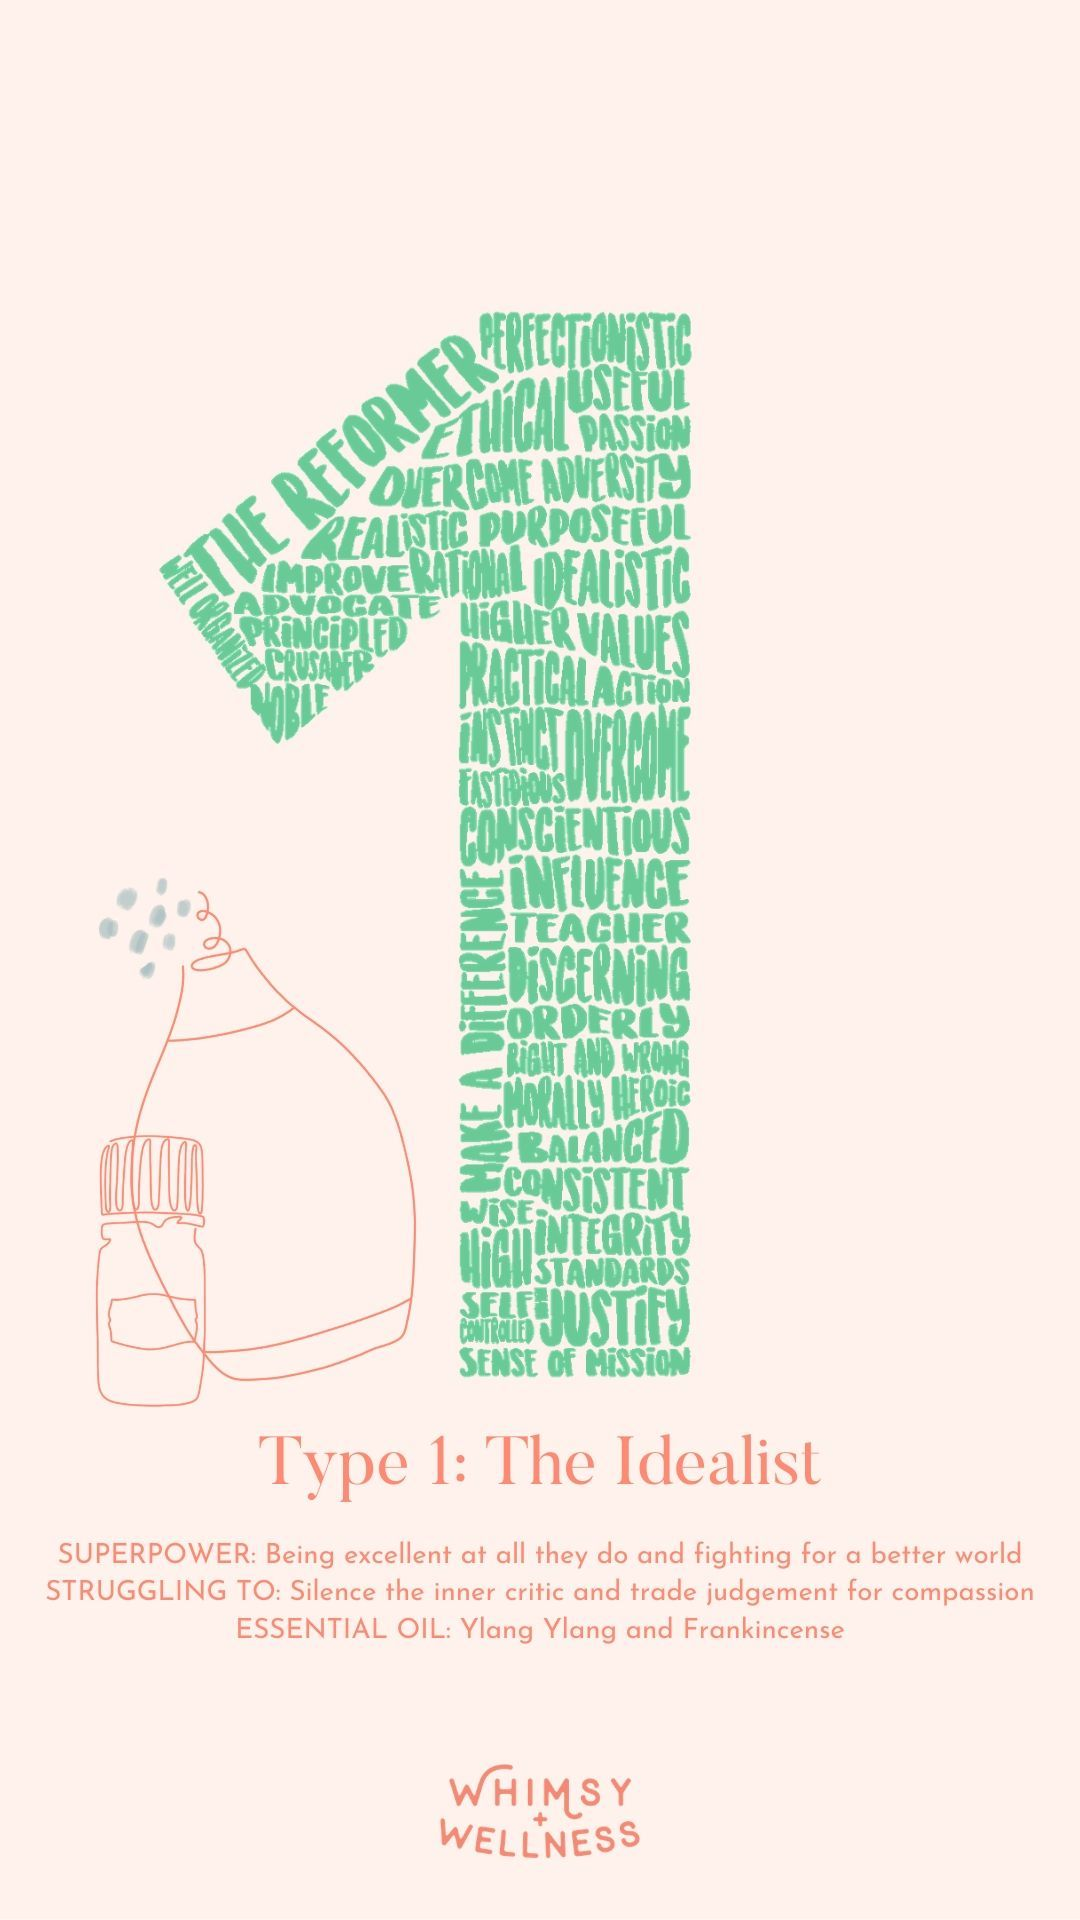 What Your Enneagram Type Says About The Essential Oils You Need - Type 1: The Idealist